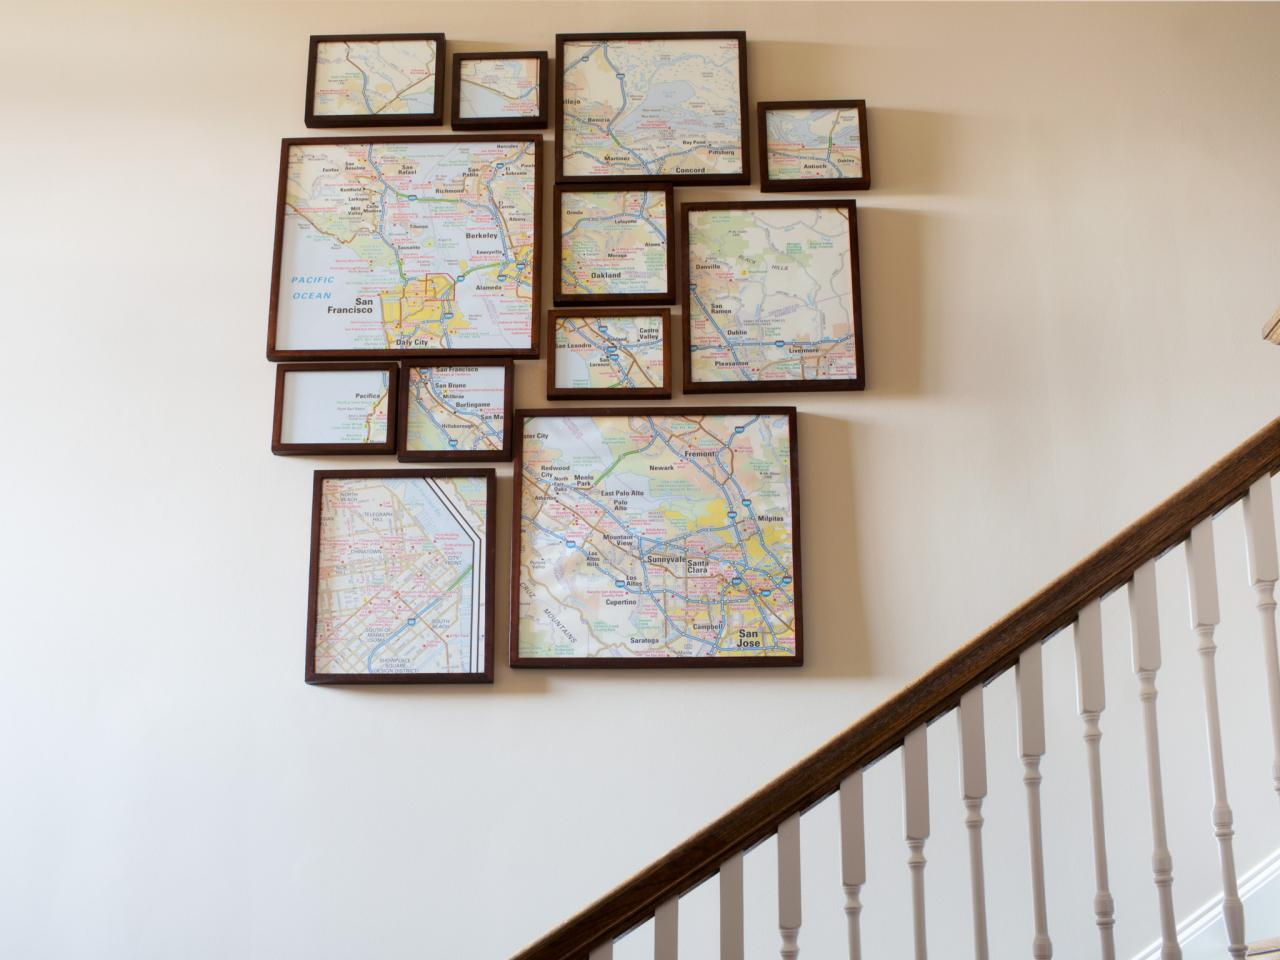 Multi Frame Wall Art how to create fractured, framed map art | hgtv